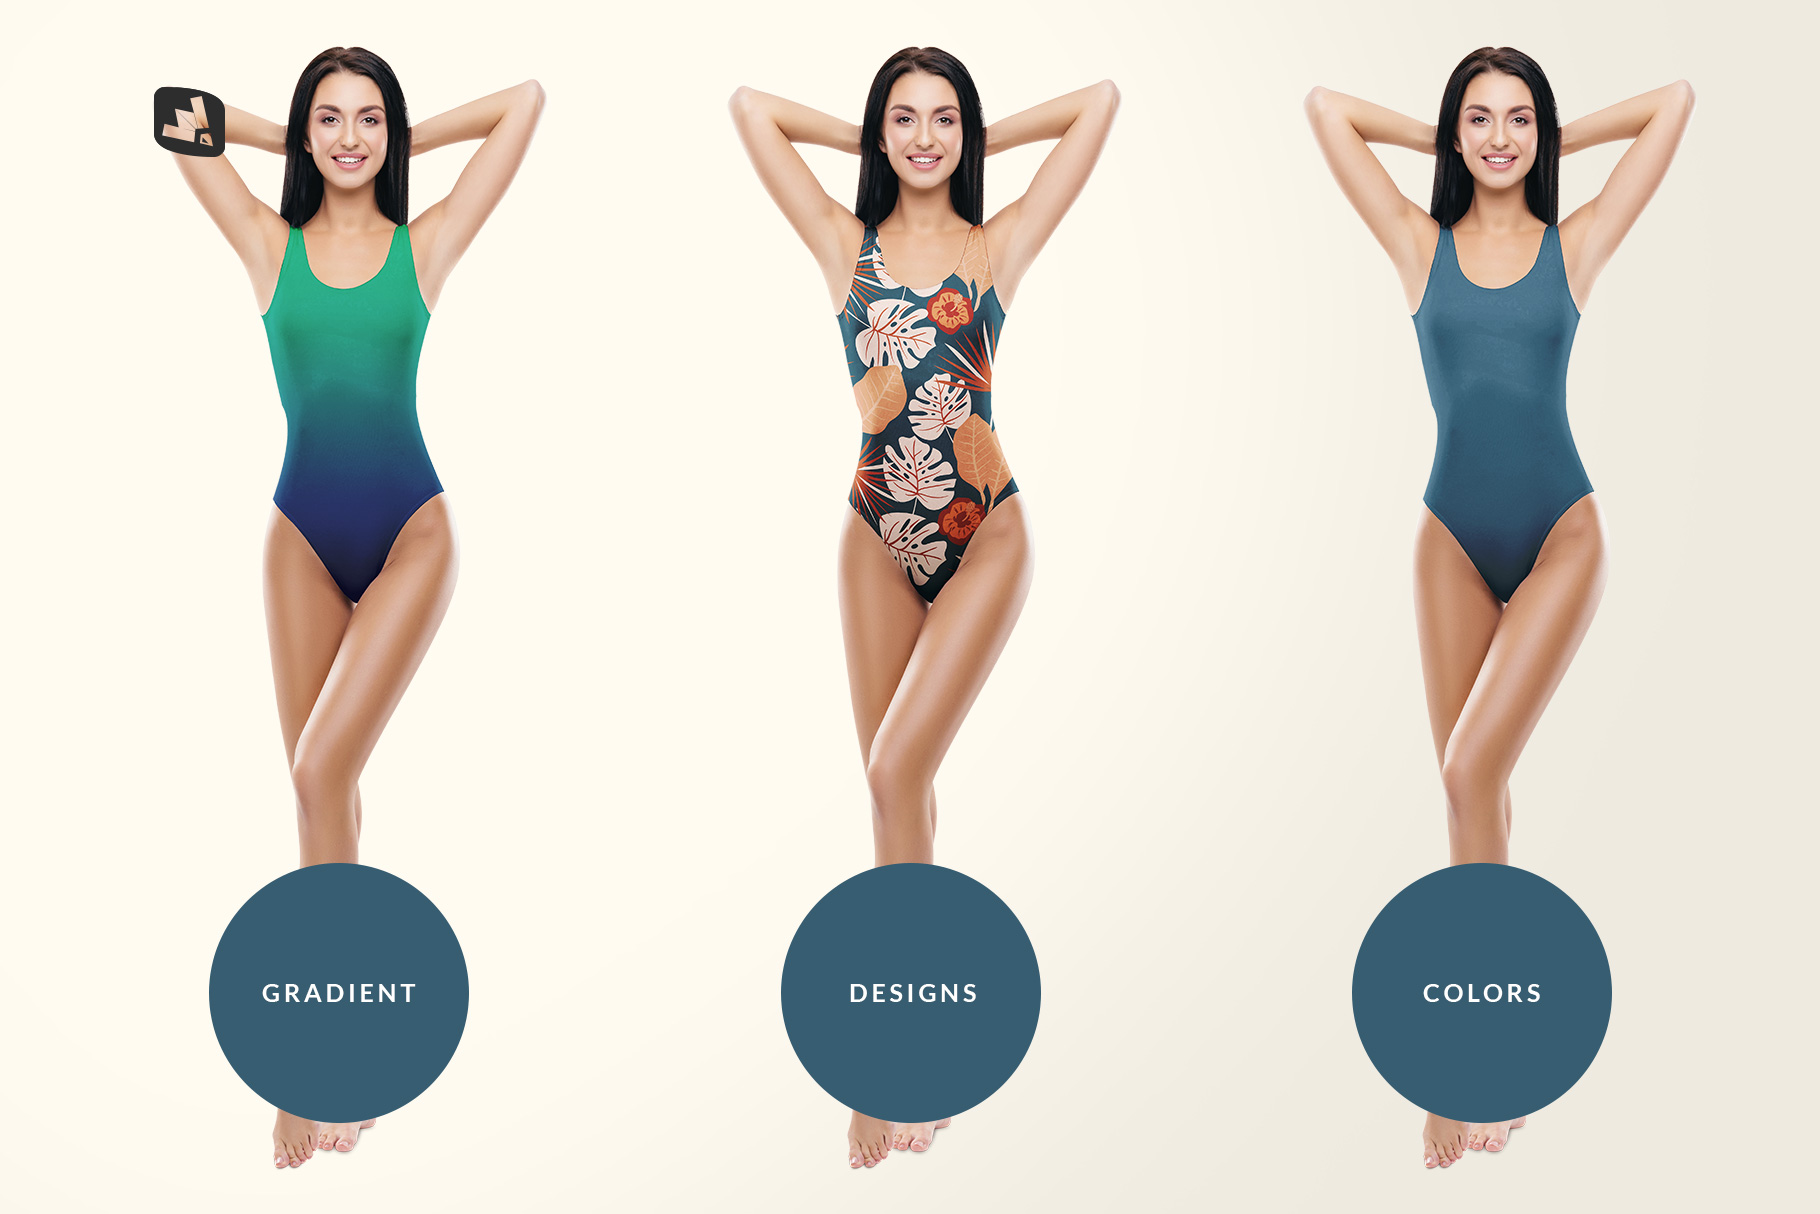 types of the women's swimsuit mockup